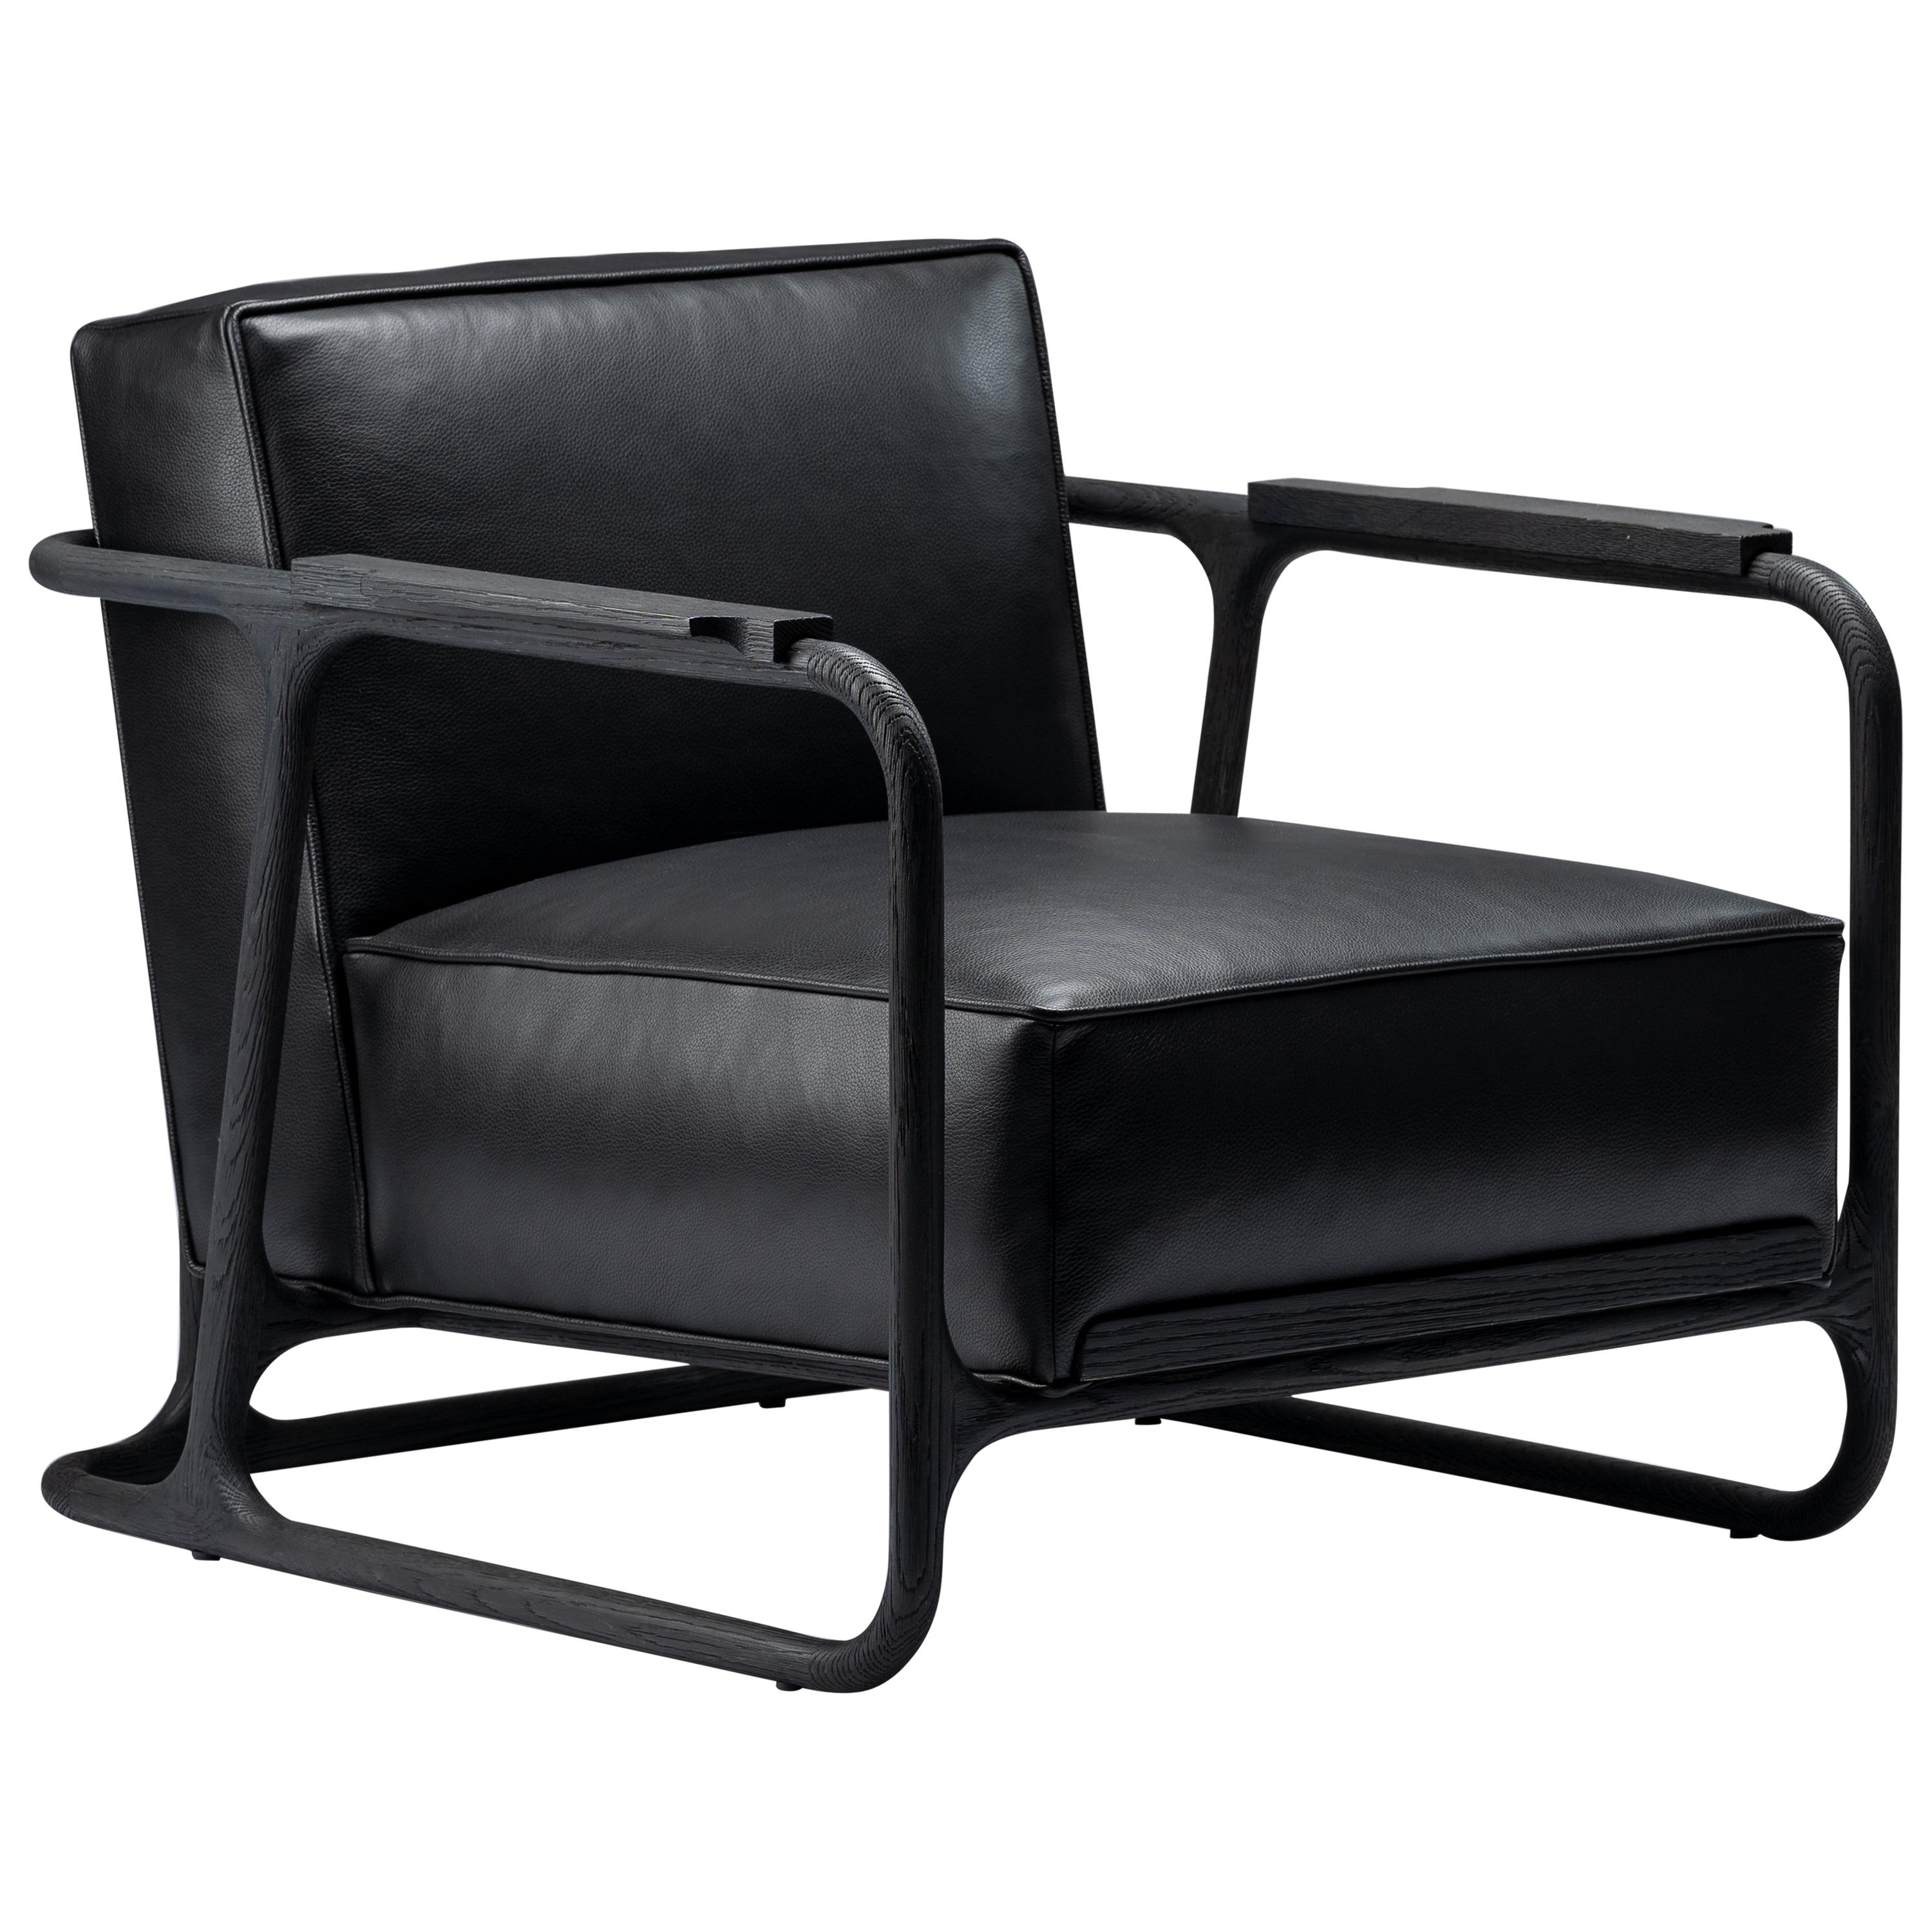 ALFRED Black Lounge Chair/Armchair in Walnut/Oak with Leather Seat, Mandy Graham